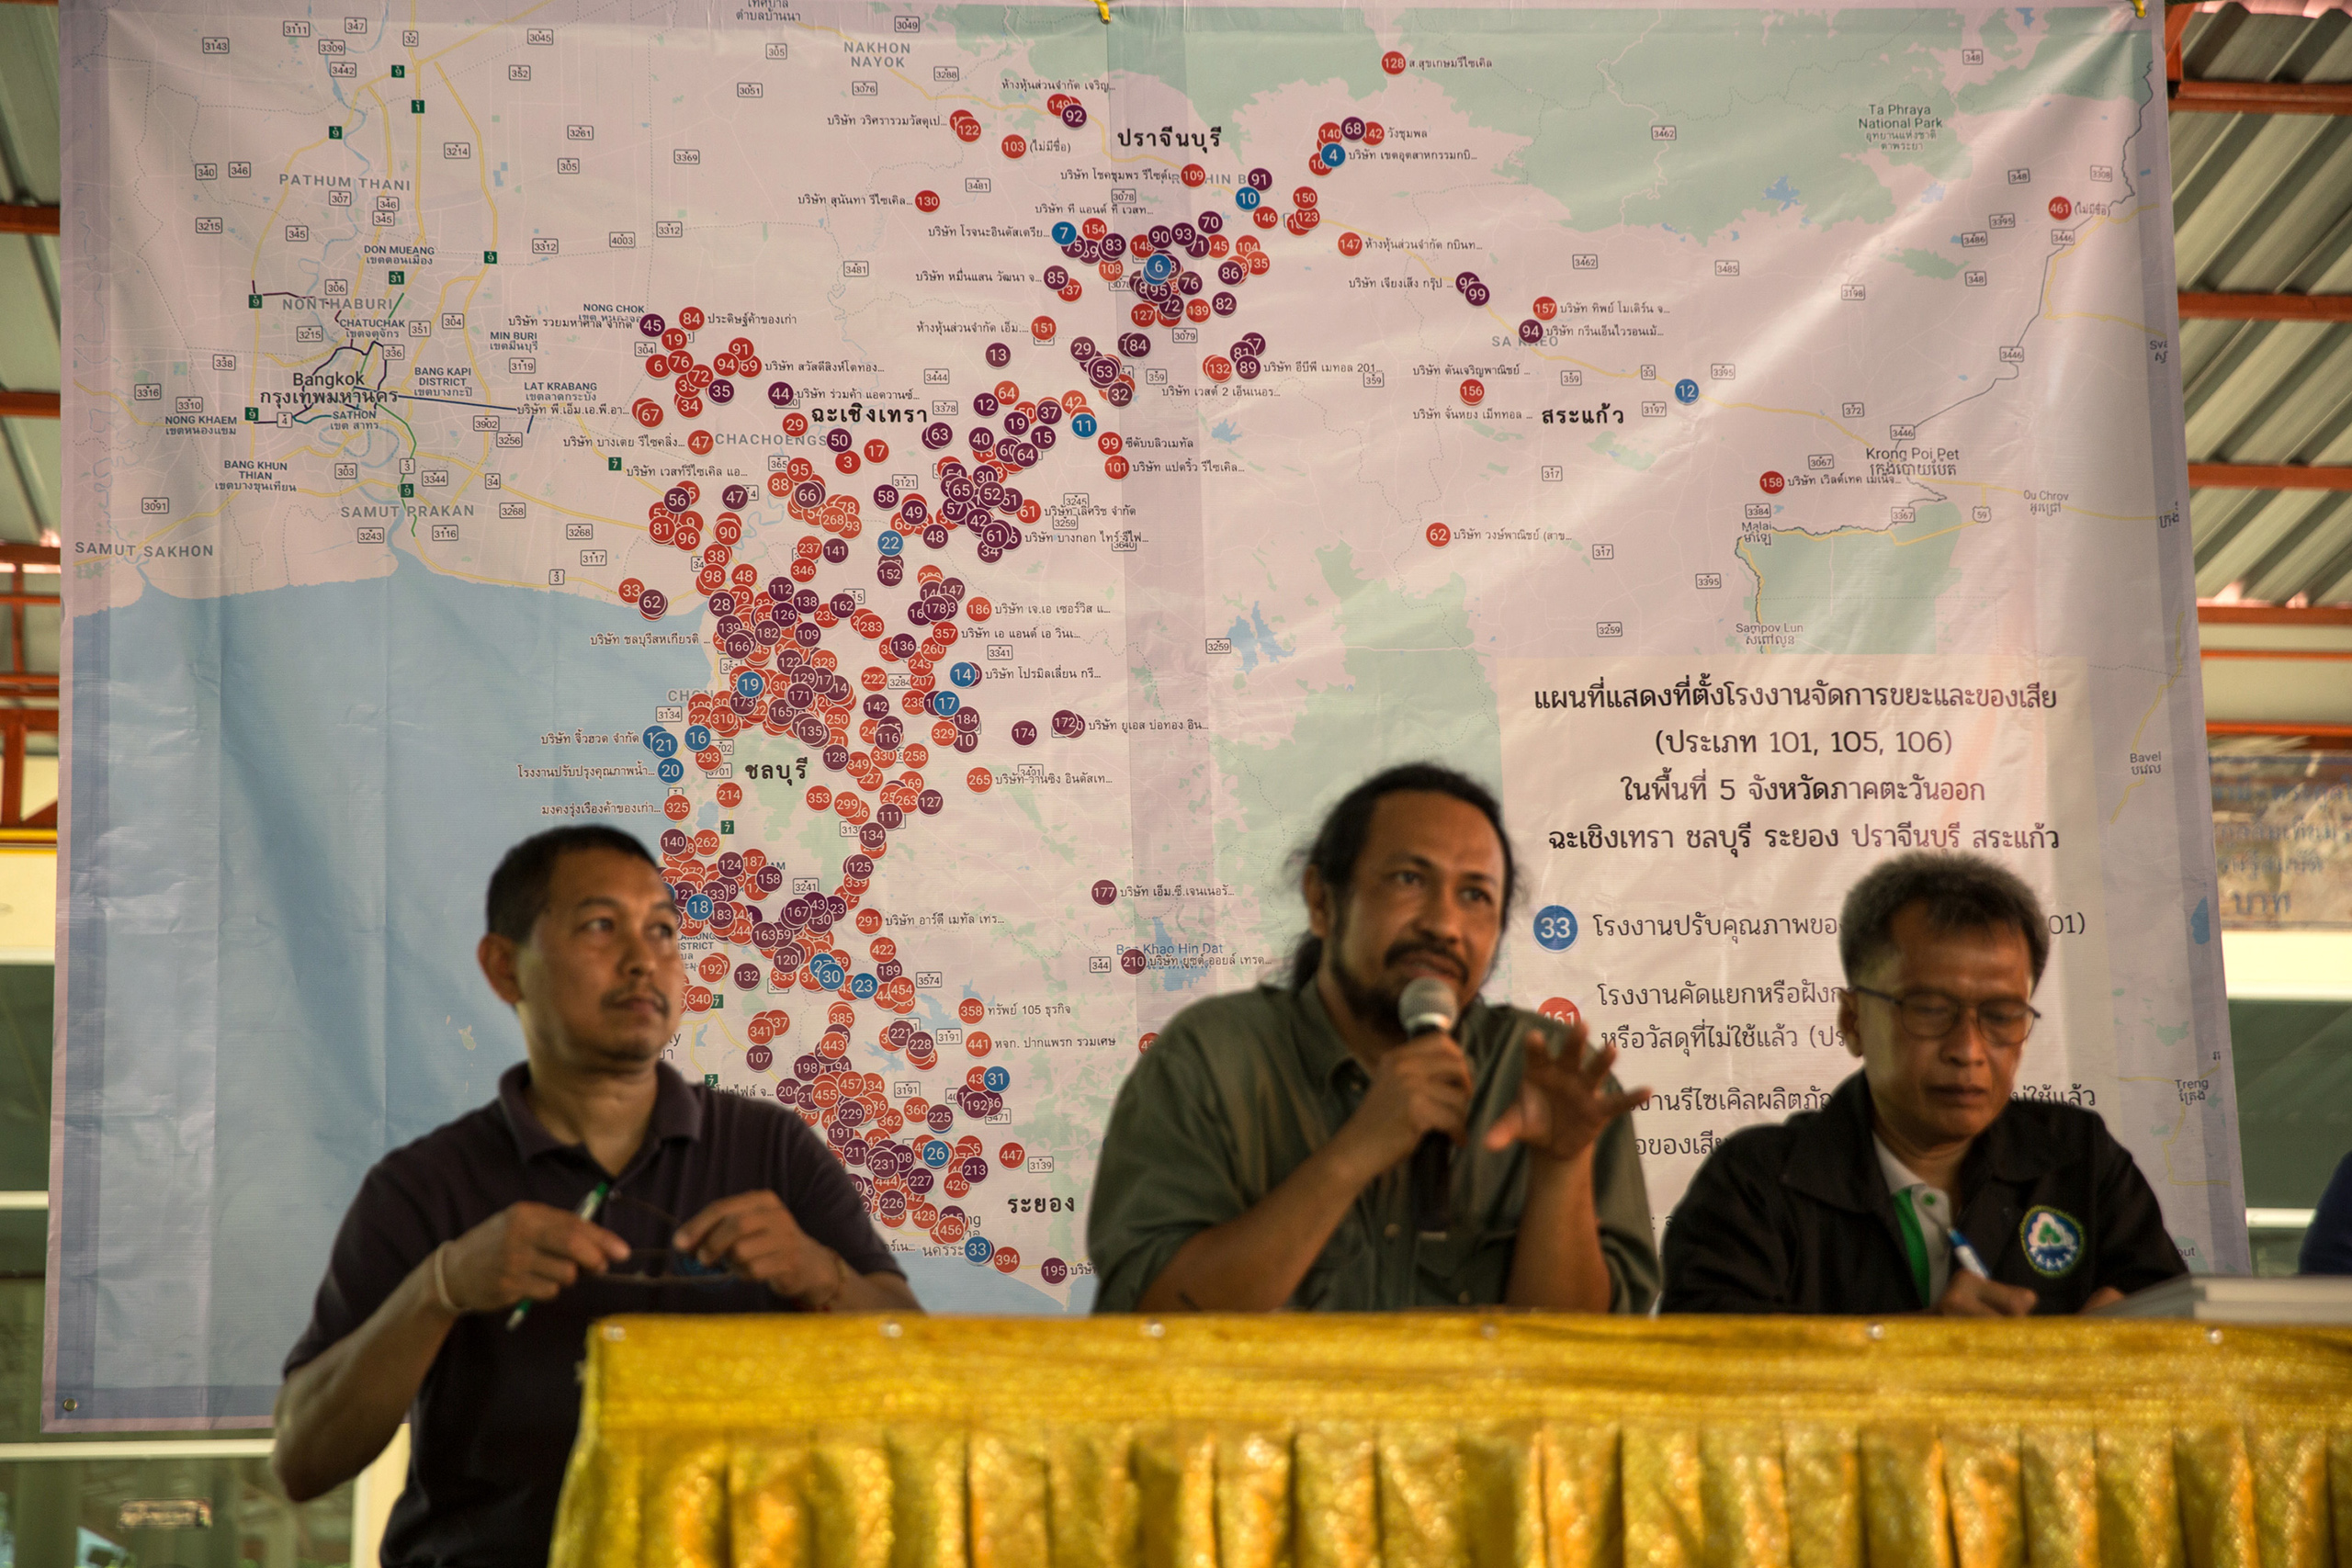 During a forum organised by Somnuck Jongmeewasin representatives from 5 provinces discuss the problems their communities face from factory pollution.